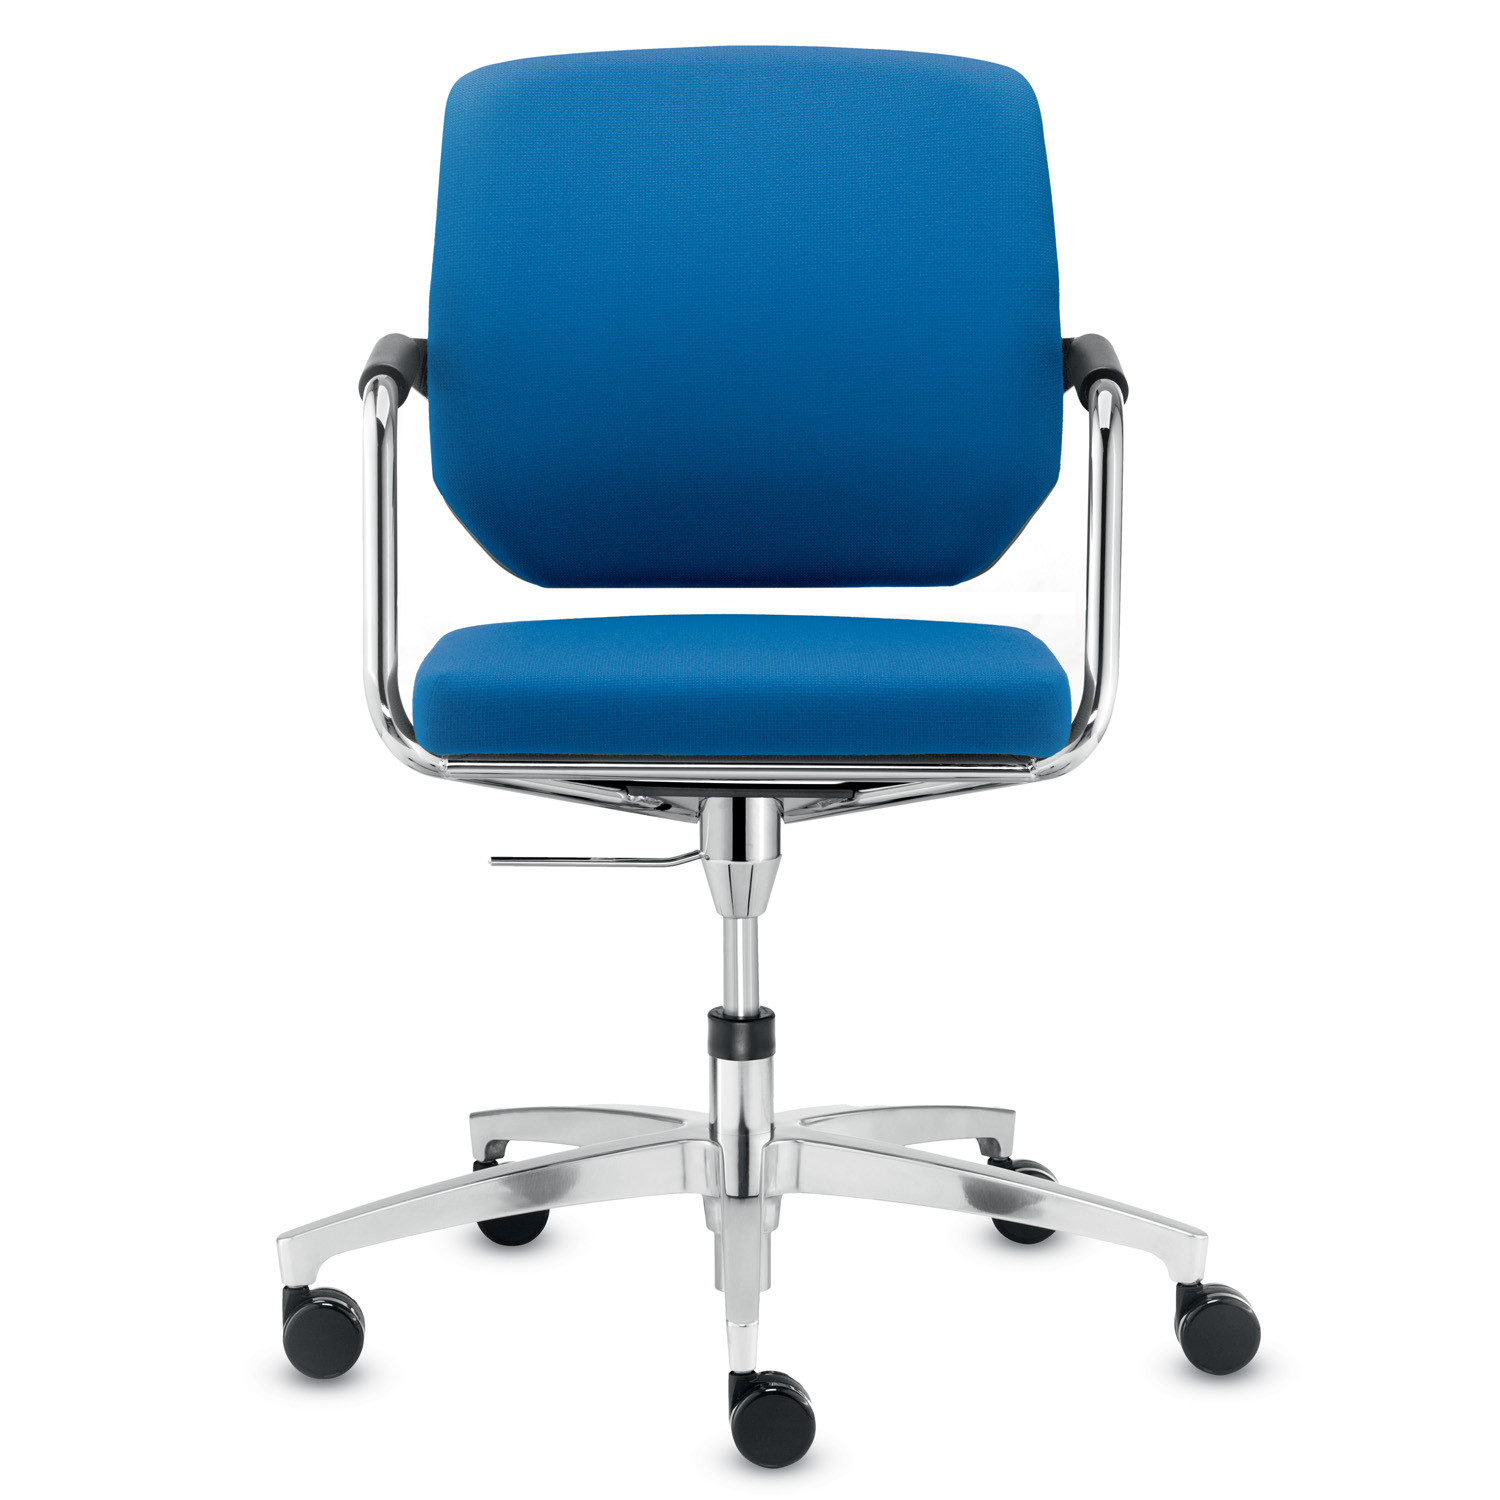 Bionic 5-Star Chair with Castors